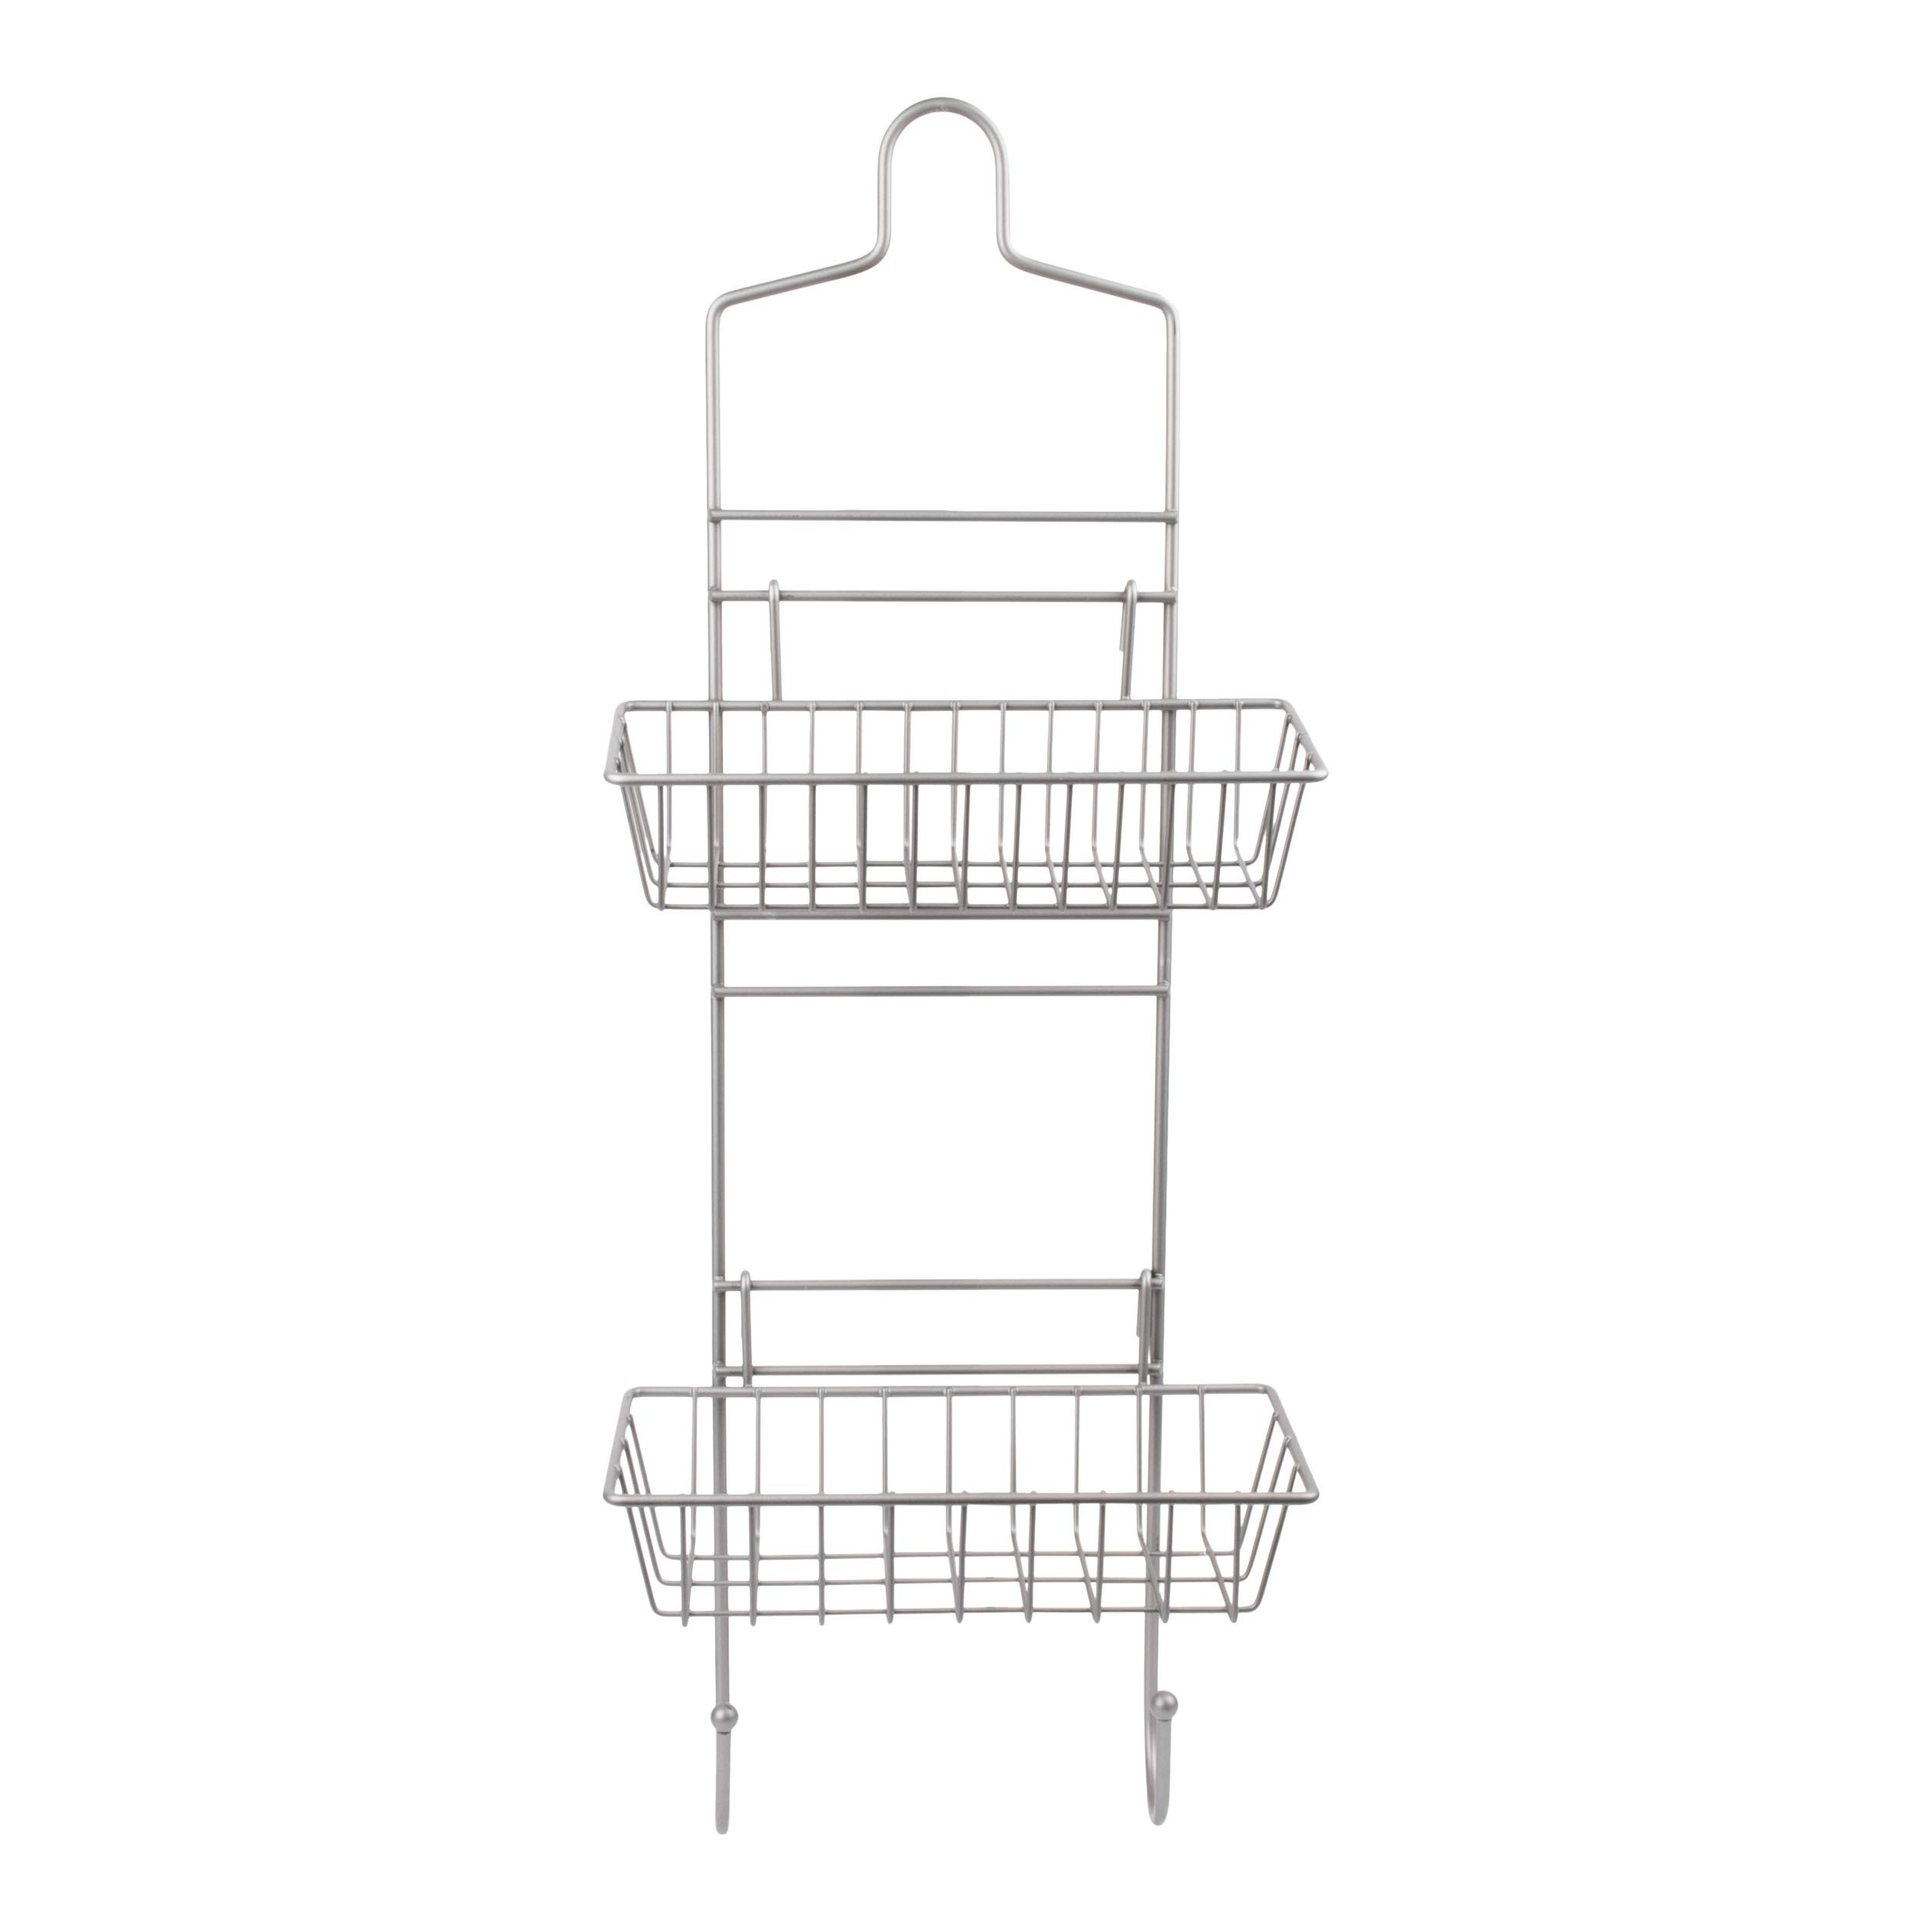 Slim Reversible Bath And Shower Caddy by LDR With Two Lightweight Easy Adjustable Basket Organizers For Storage Over Stall Door or Hanging From Shower Head, Durable Rust Resistant Satin Nickel Finish